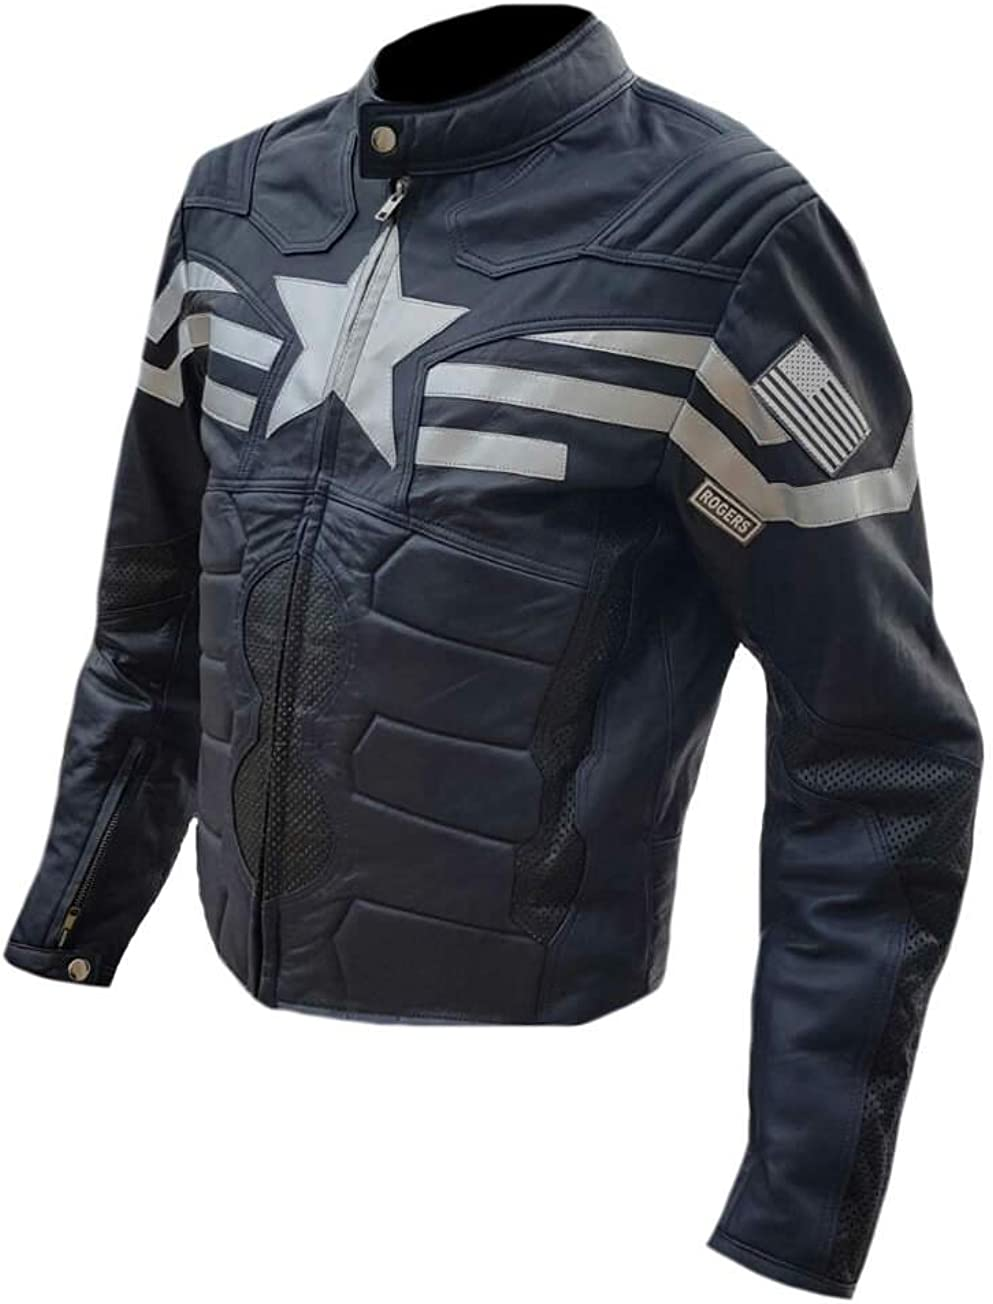 Stormwise Mens America Fashion Captain Winter Soldier Leather Jacket